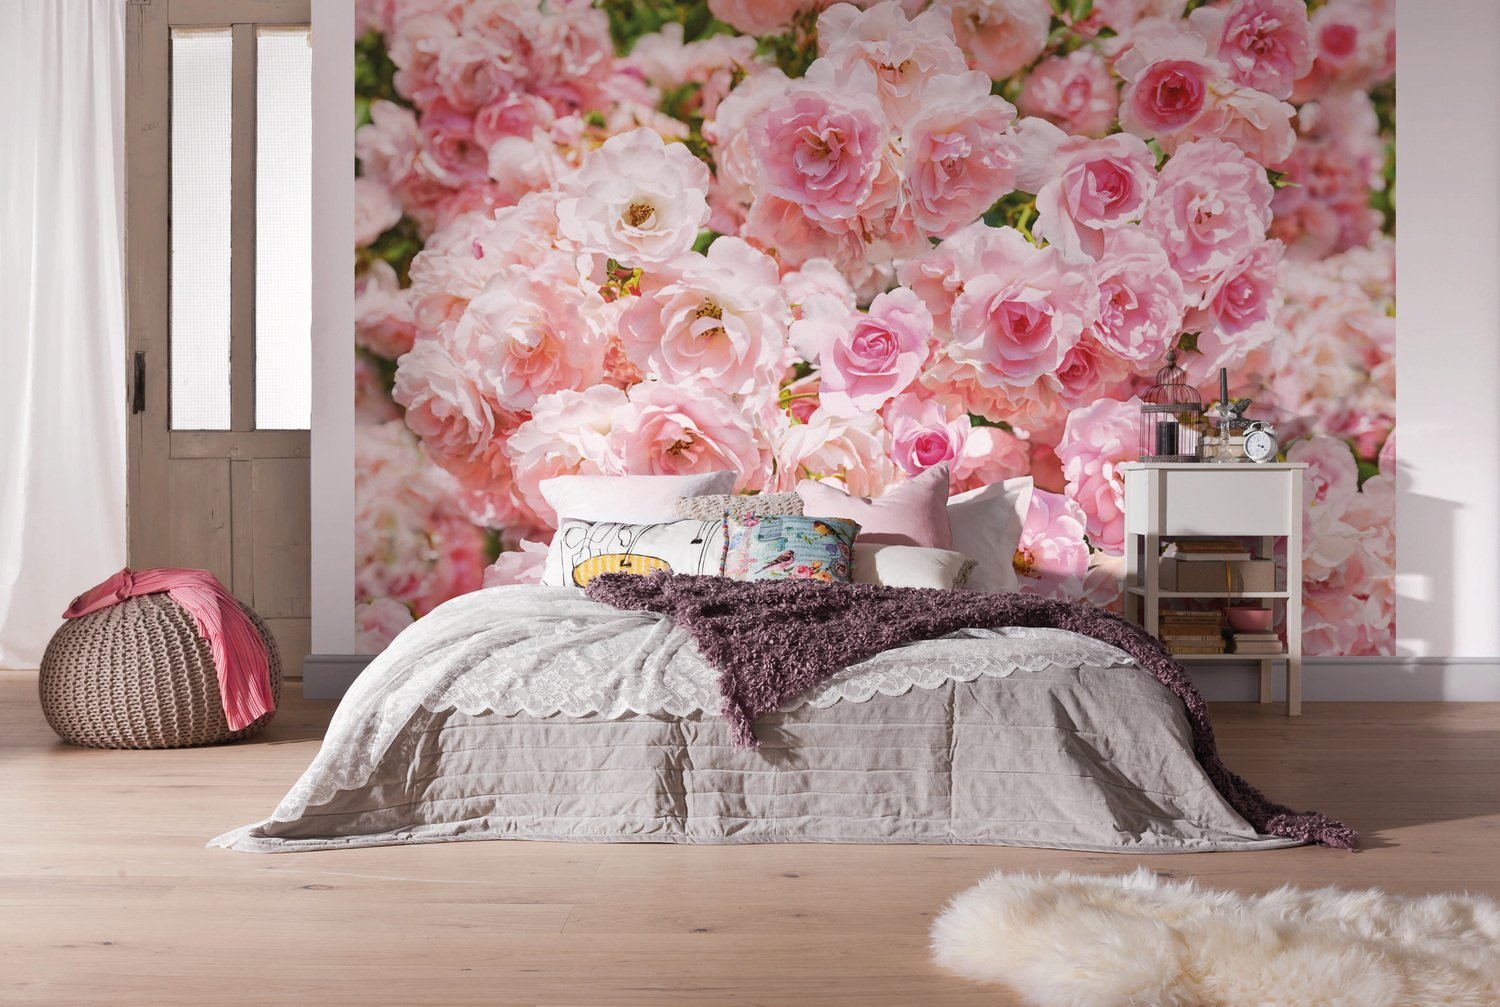 une poster g ant de roses rose pour la t te de lit leroy merlin. Black Bedroom Furniture Sets. Home Design Ideas